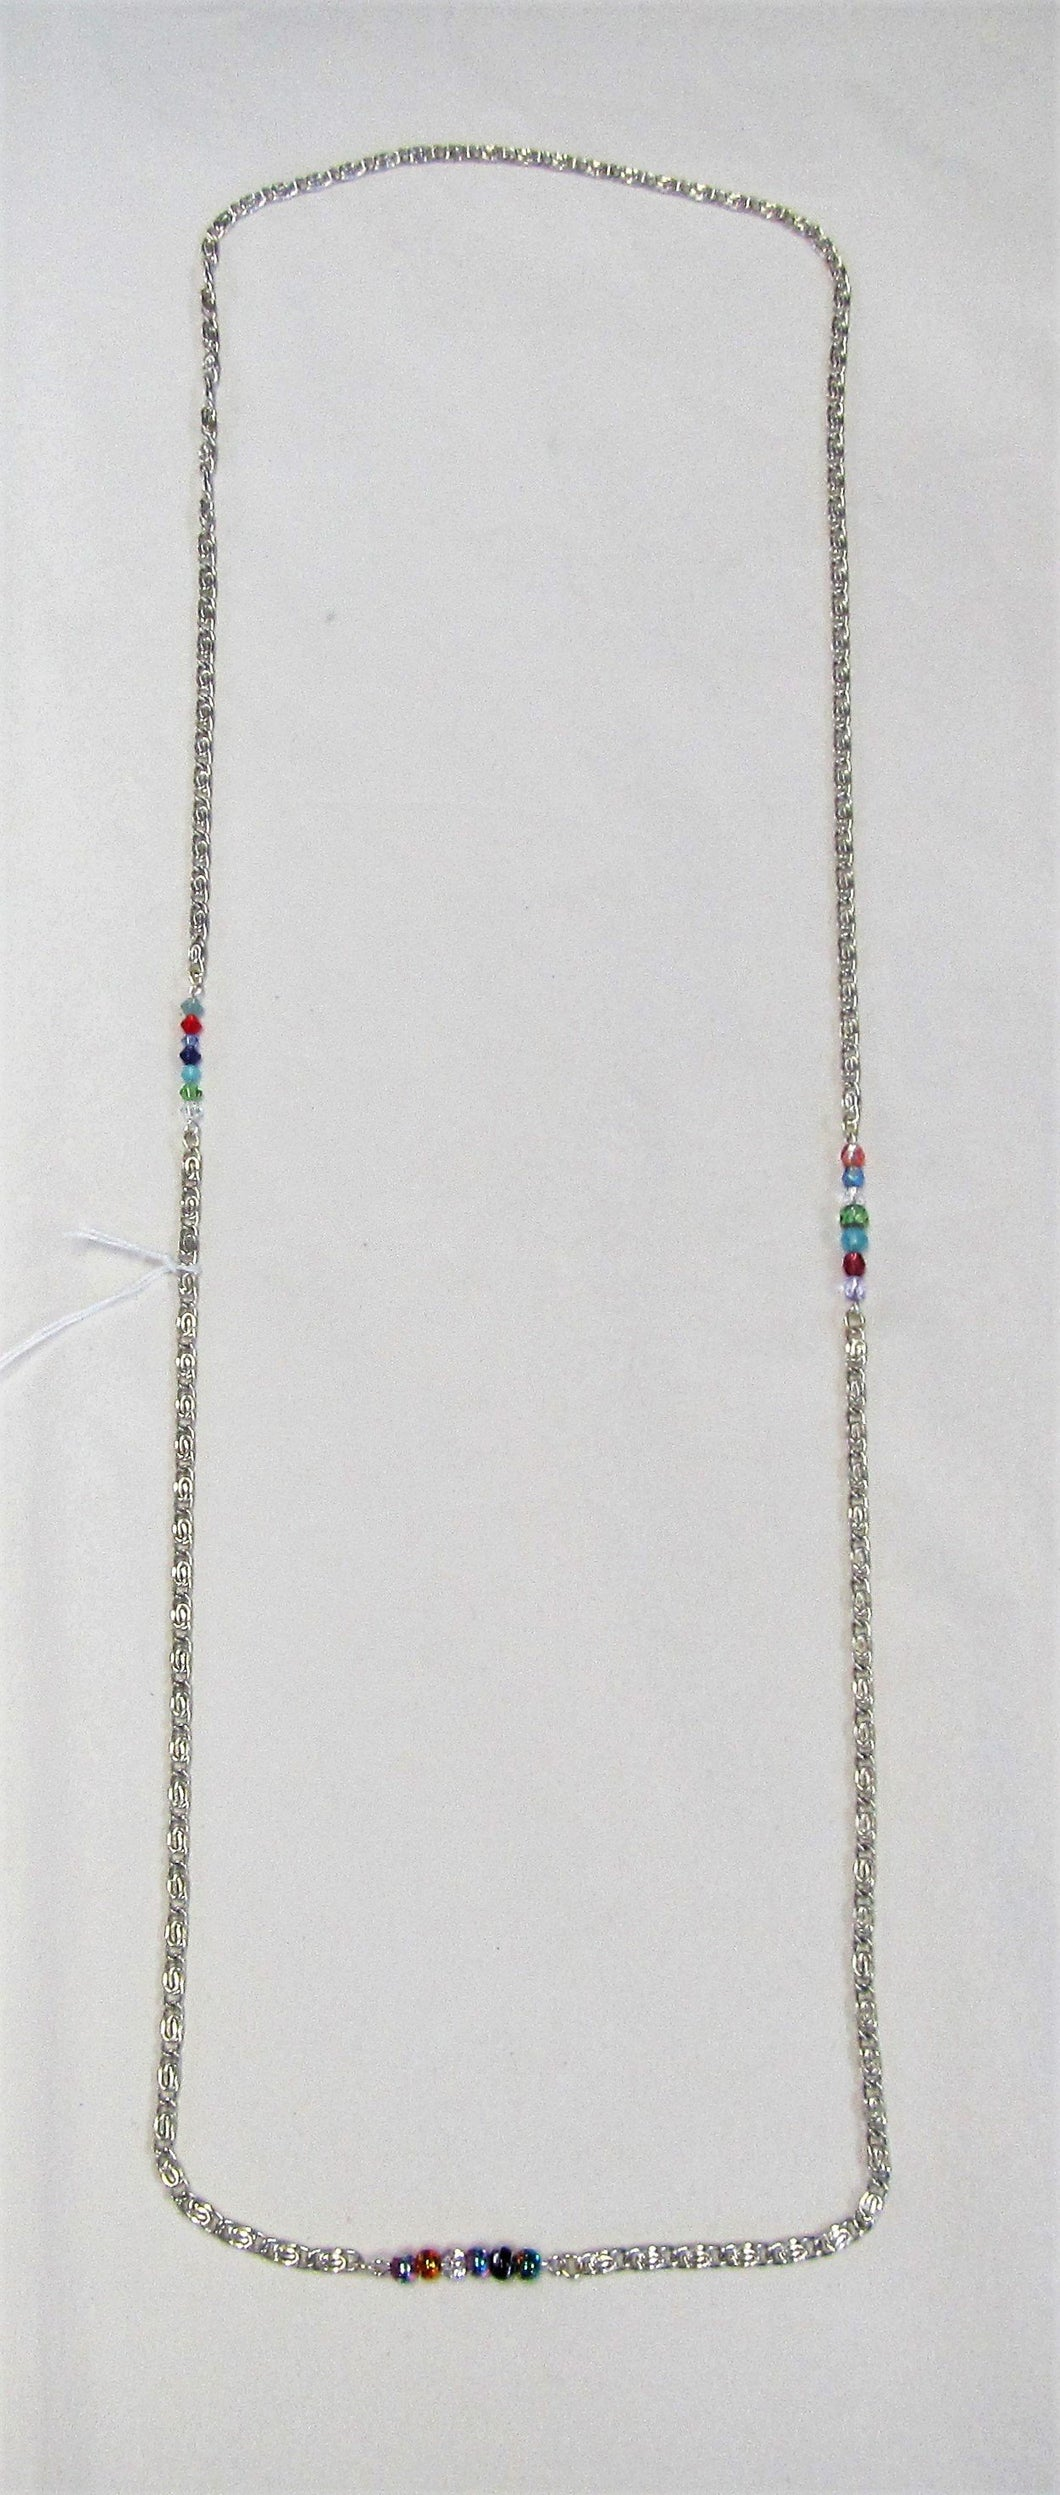 Handcrafted chain and bead necklace